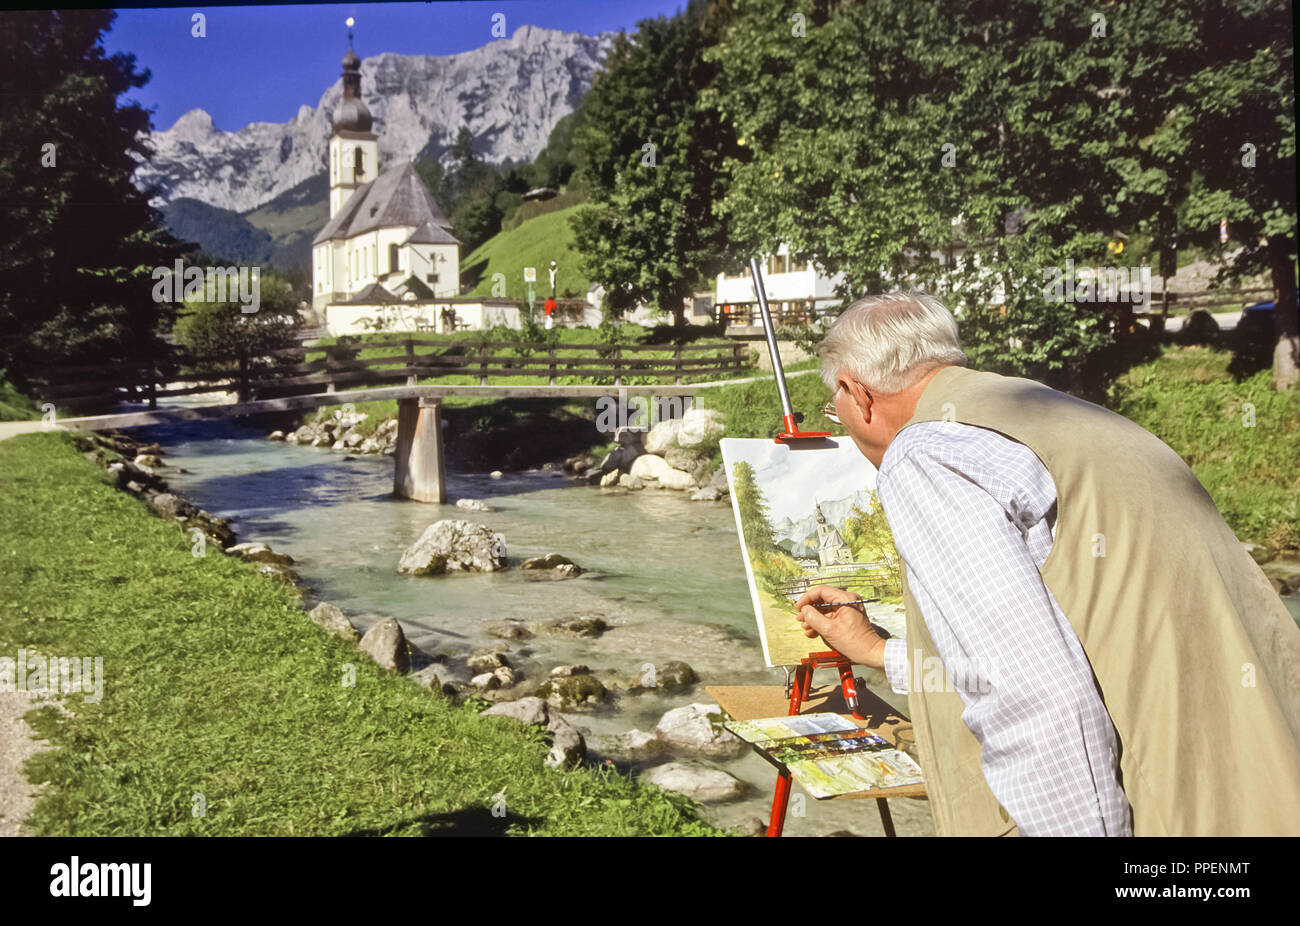 Painter before the picturesquely situated church in Ramsau - consecrated to St. Sebastian, Berchtesgaden, Upper Bavaria against the impressive backdrop of the Reiter Alpe in the Berchtesgaden Alps - Stock Image